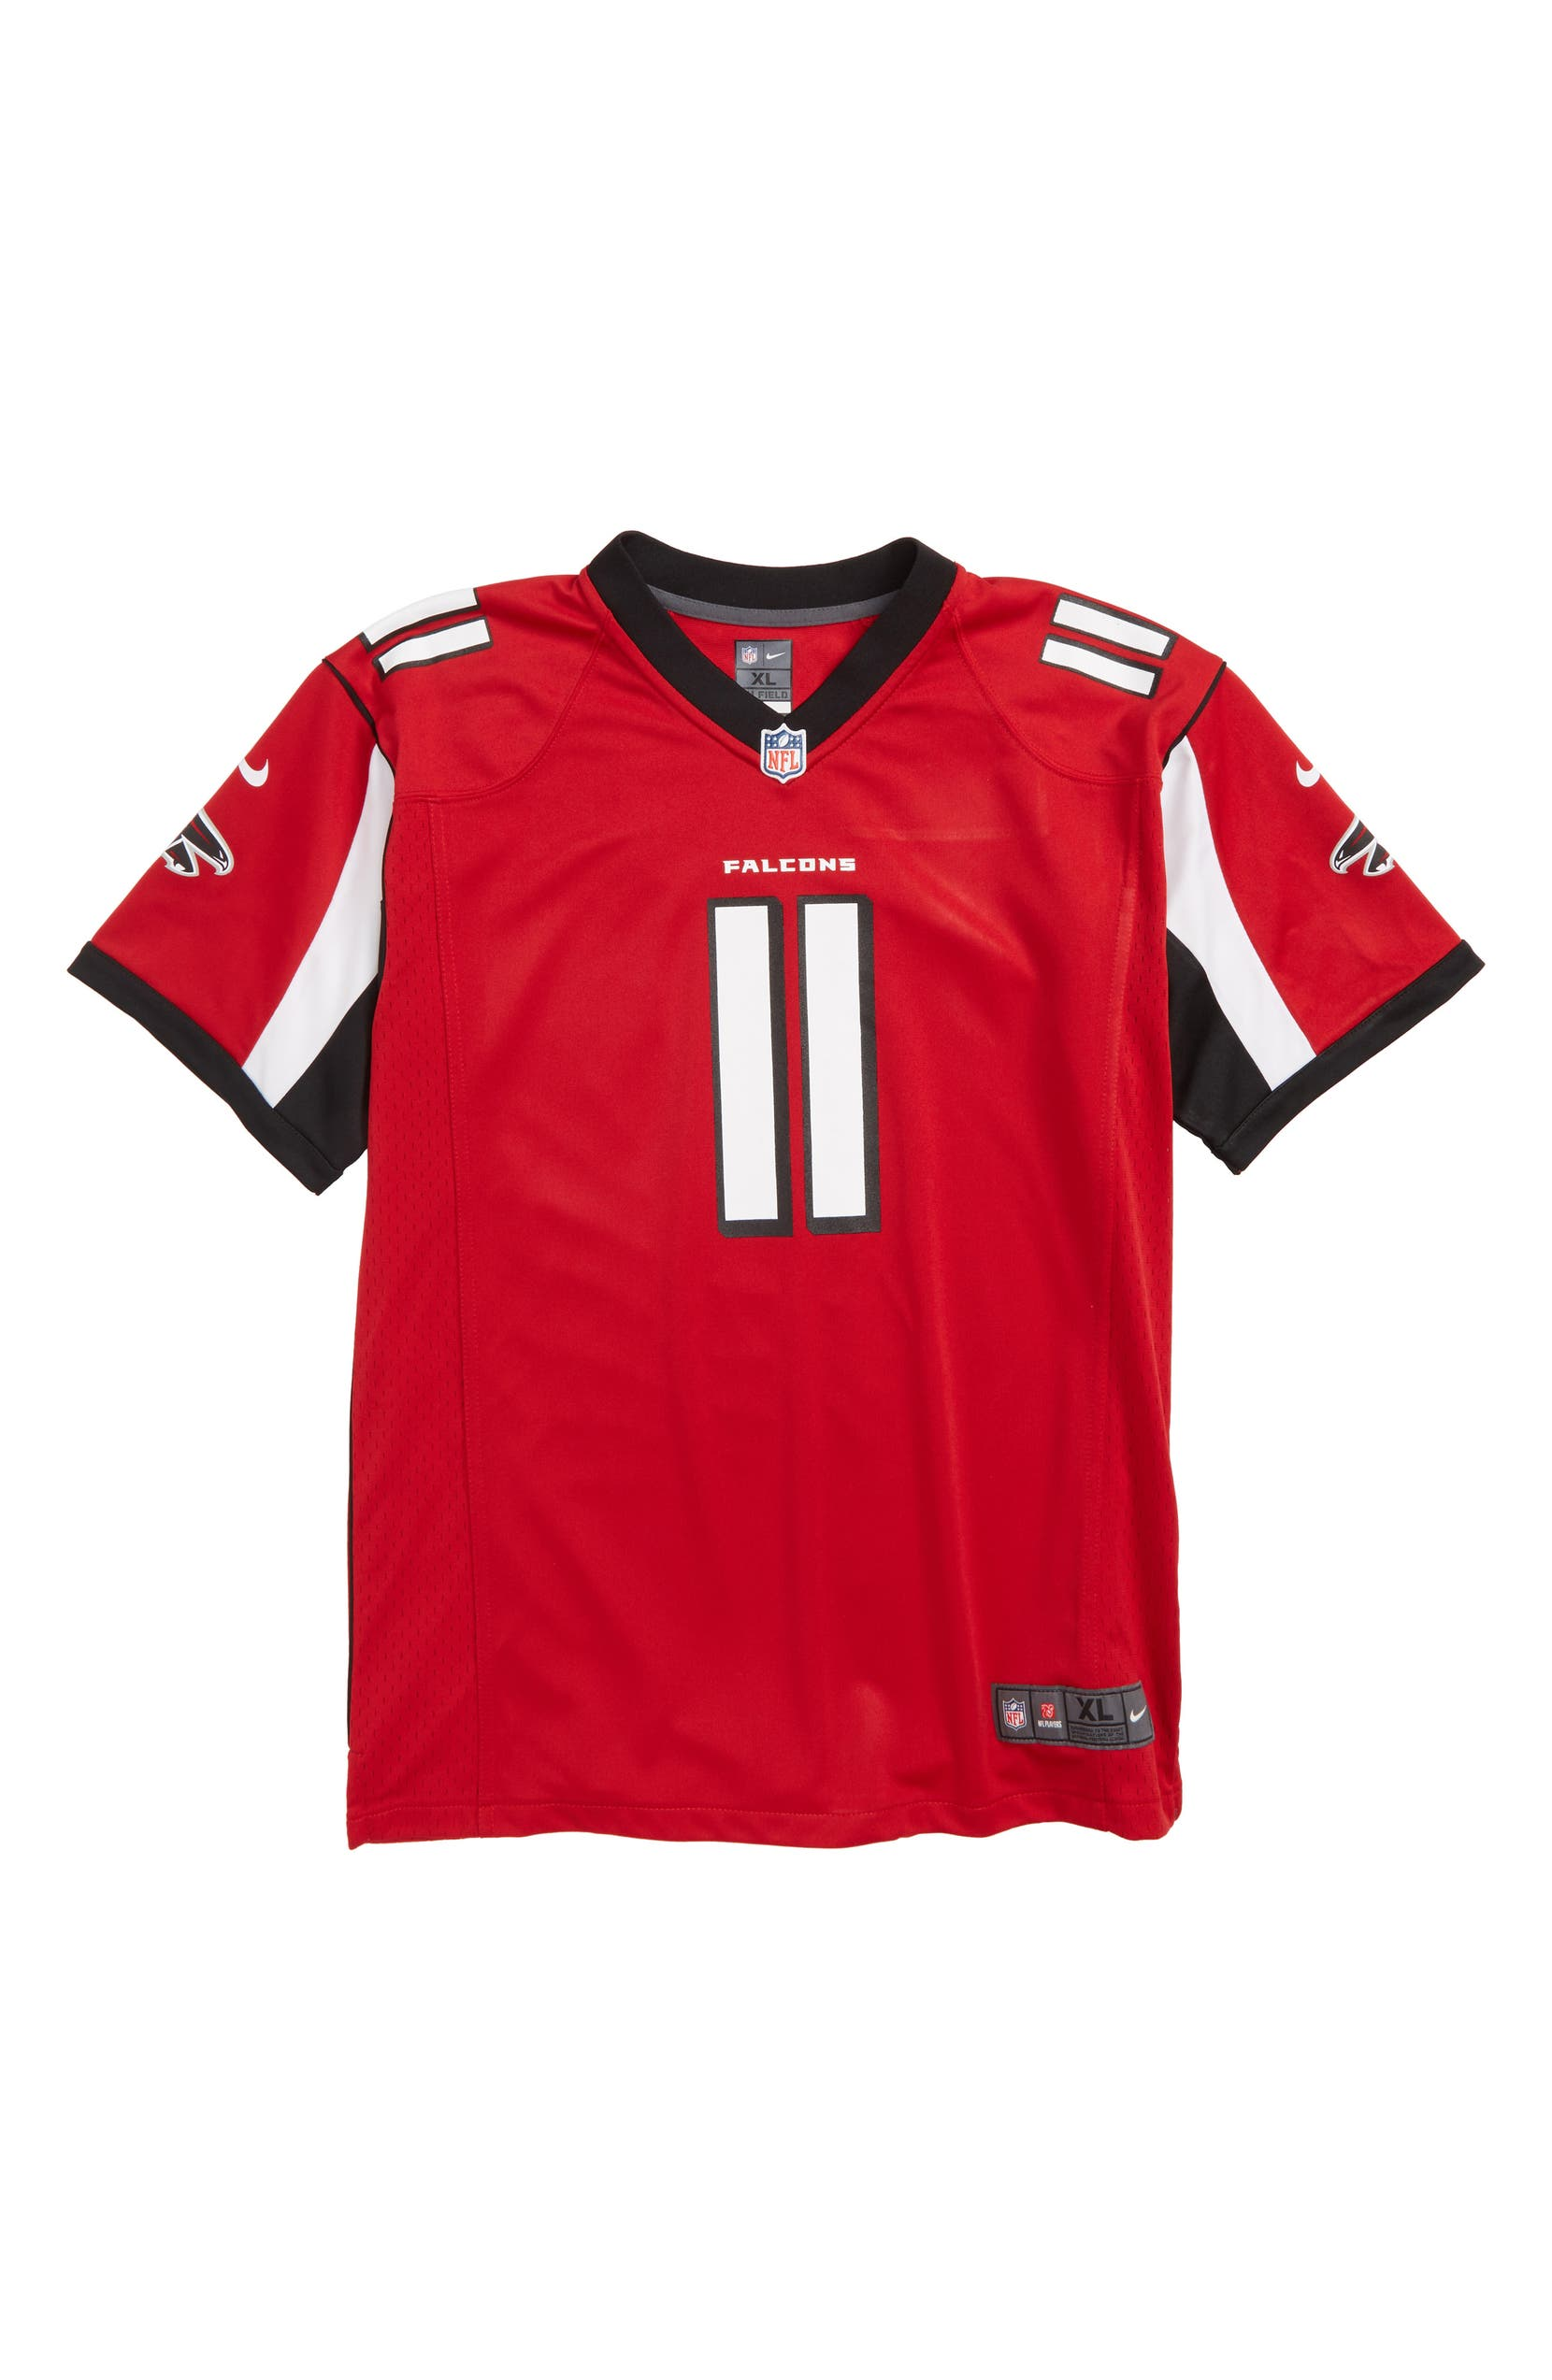 quality design 25938 9ab78 NFL Logo Atlanta Falcons Julio Jones Jersey